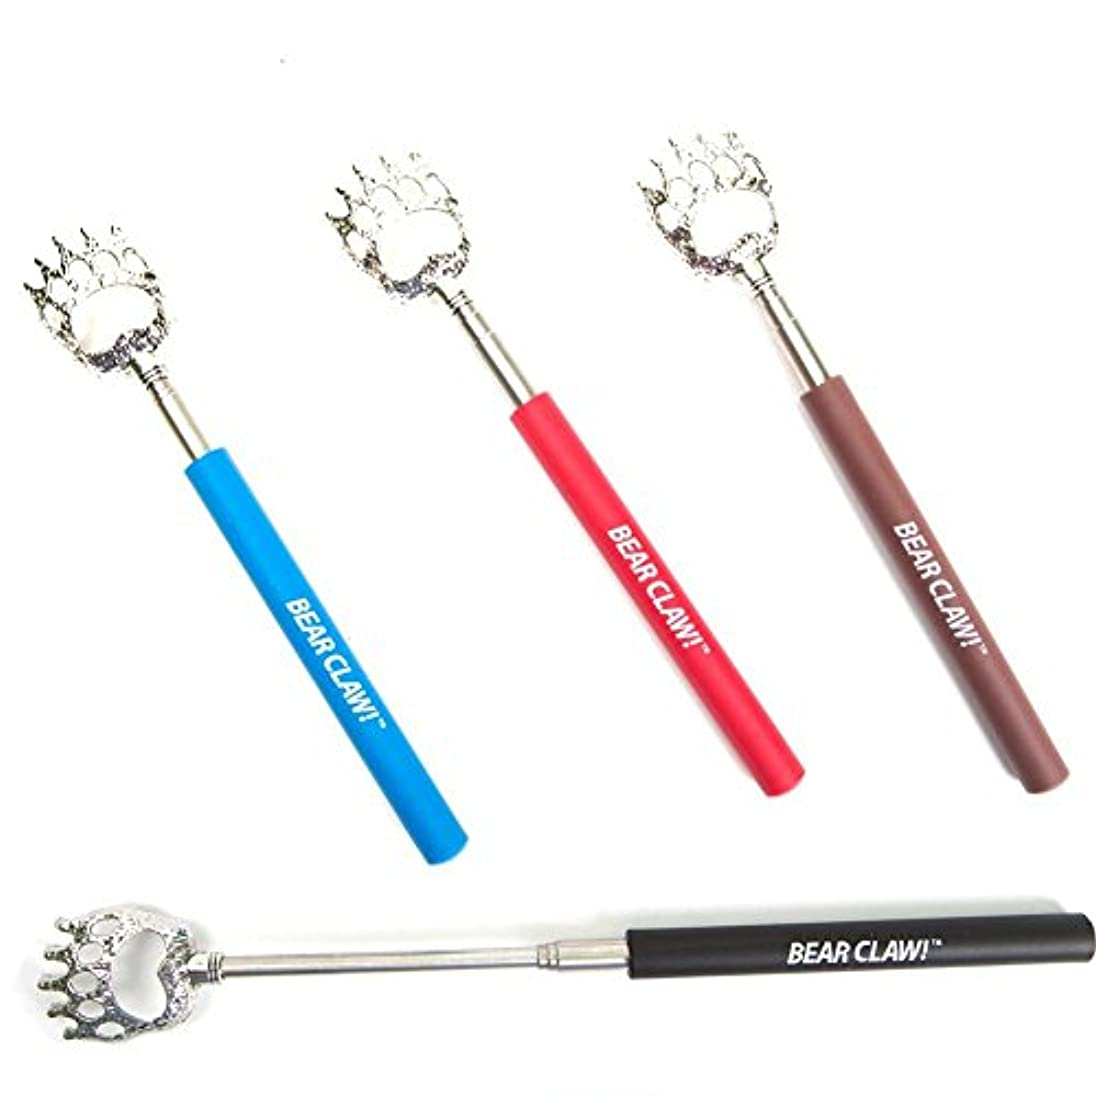 Bear Claw Extendable Telescopic Back Scratcher 1x (Assorted Colors) by DM Merchandising